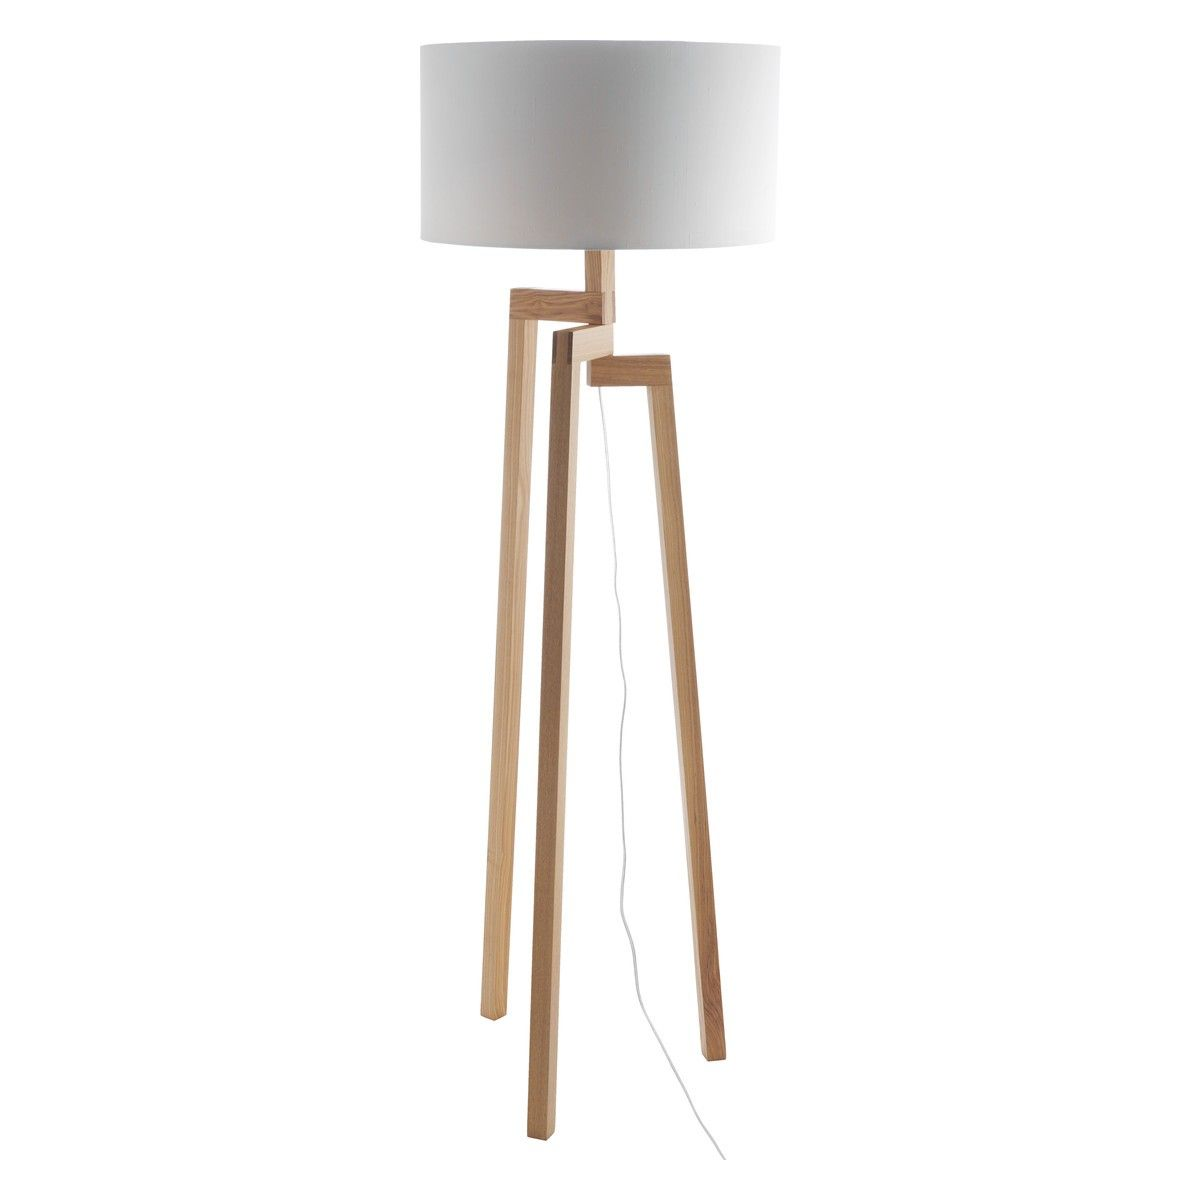 Kitchen Floor Lamps Sweep Floor Lamp Matt Grey With Copper Copper Grey And Floor Lamps